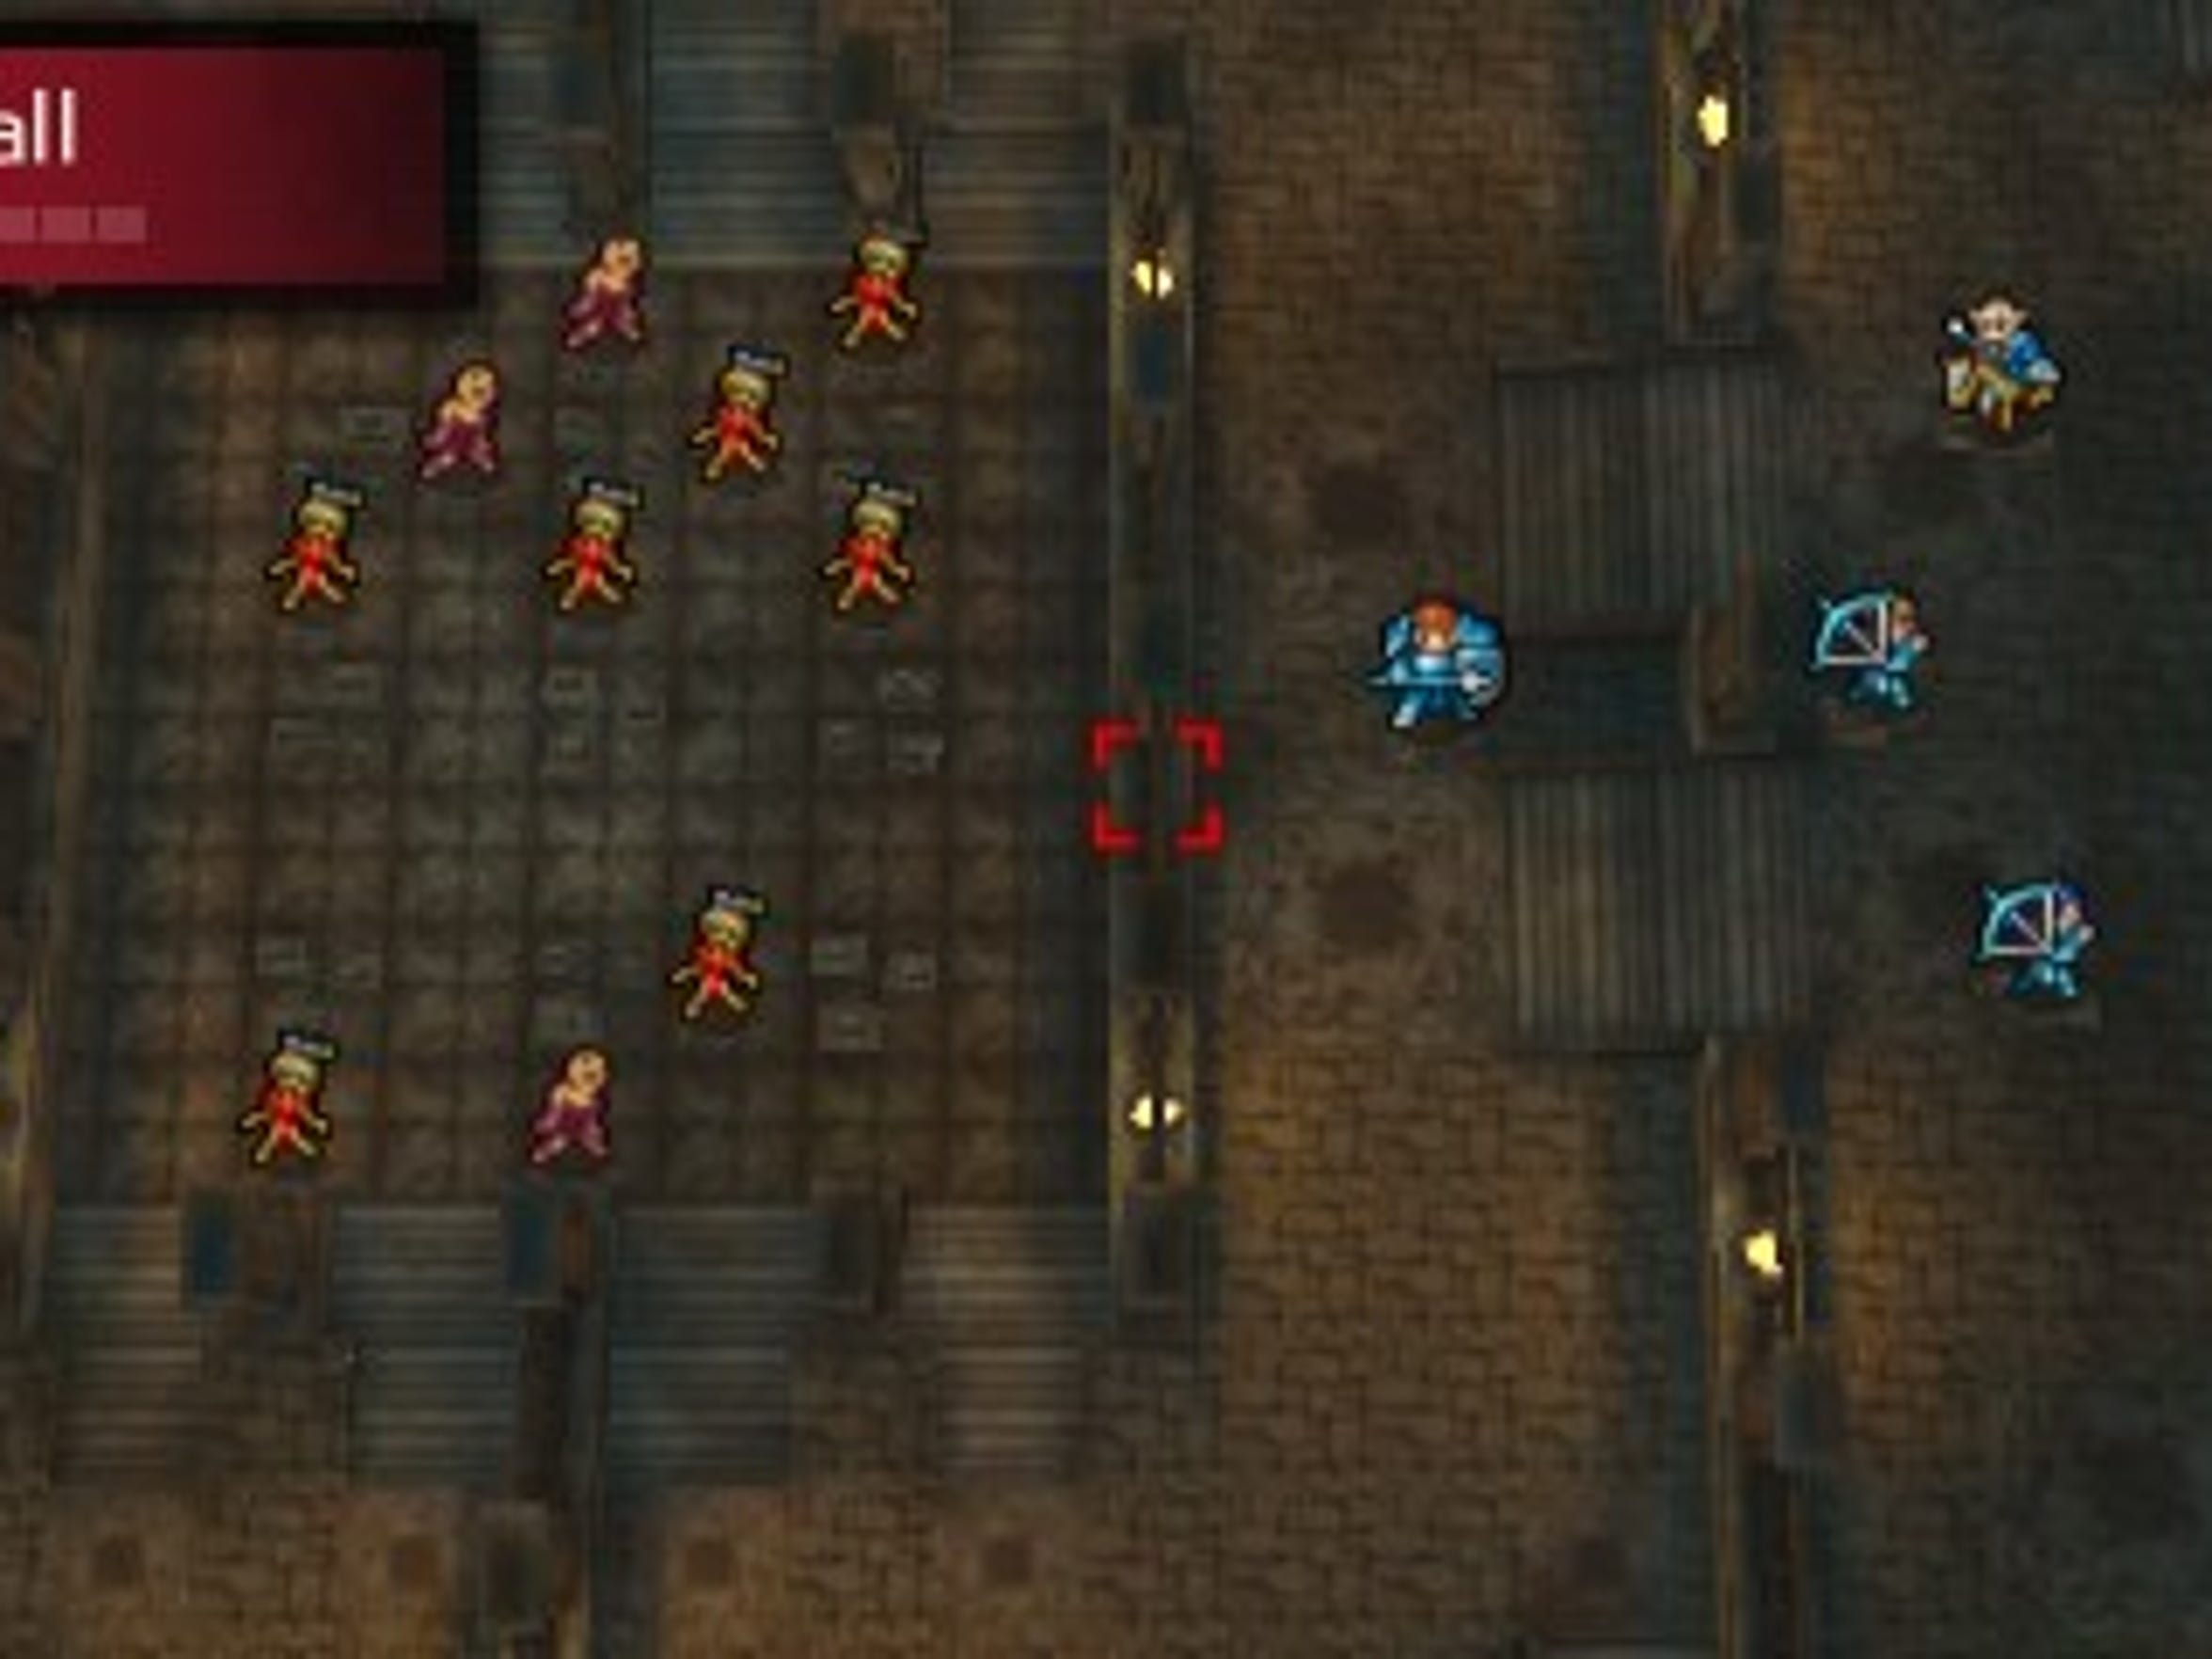 Fire Emblem Echoes: Tales of Valentia is a remake of Fire Emblem Gaiden from 1992 with better graphics, 3D battles and animated cut scenes.